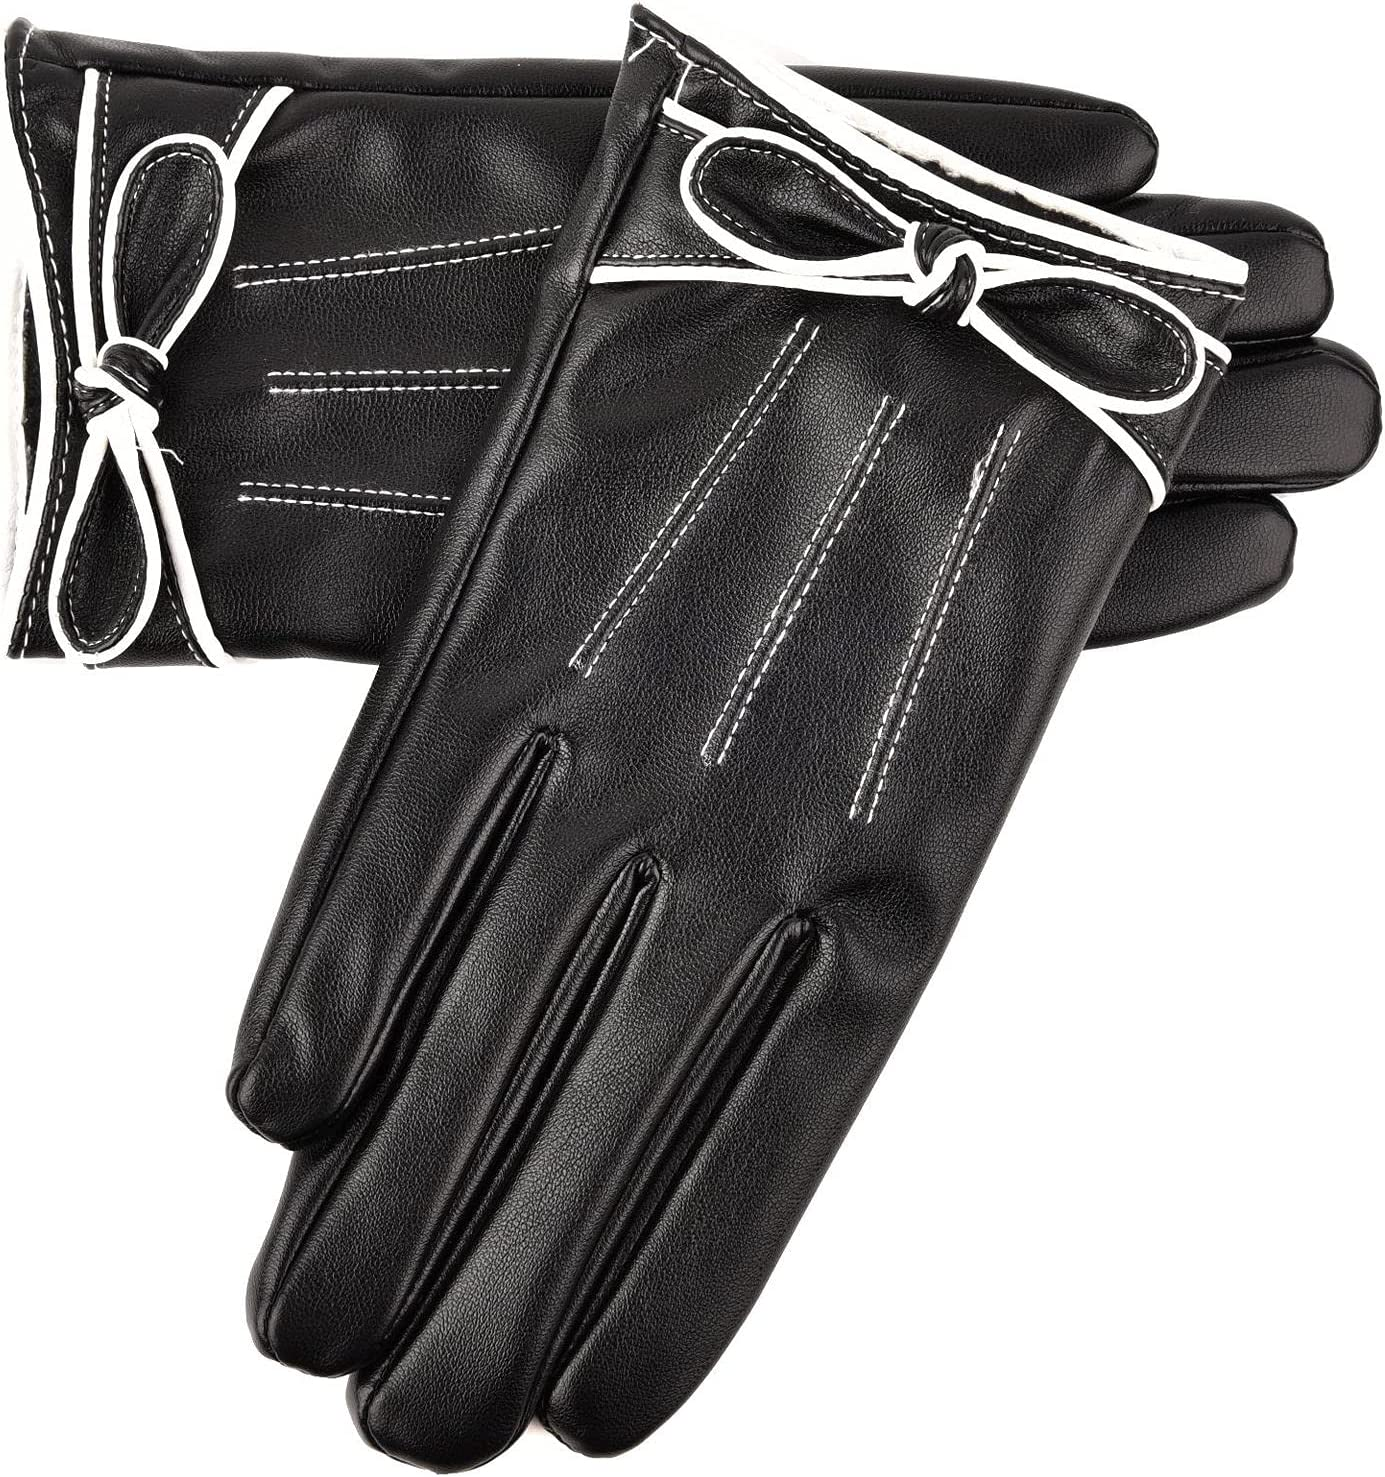 HJKHNK Imitation Leather Warm Gloves, Bow Wrist Decoration Non-Slip and Durable Soft, Comfortable, and Resistant, Too Cold Suitable for Autumn and Winter Sports Riding Gloves for Women,Black